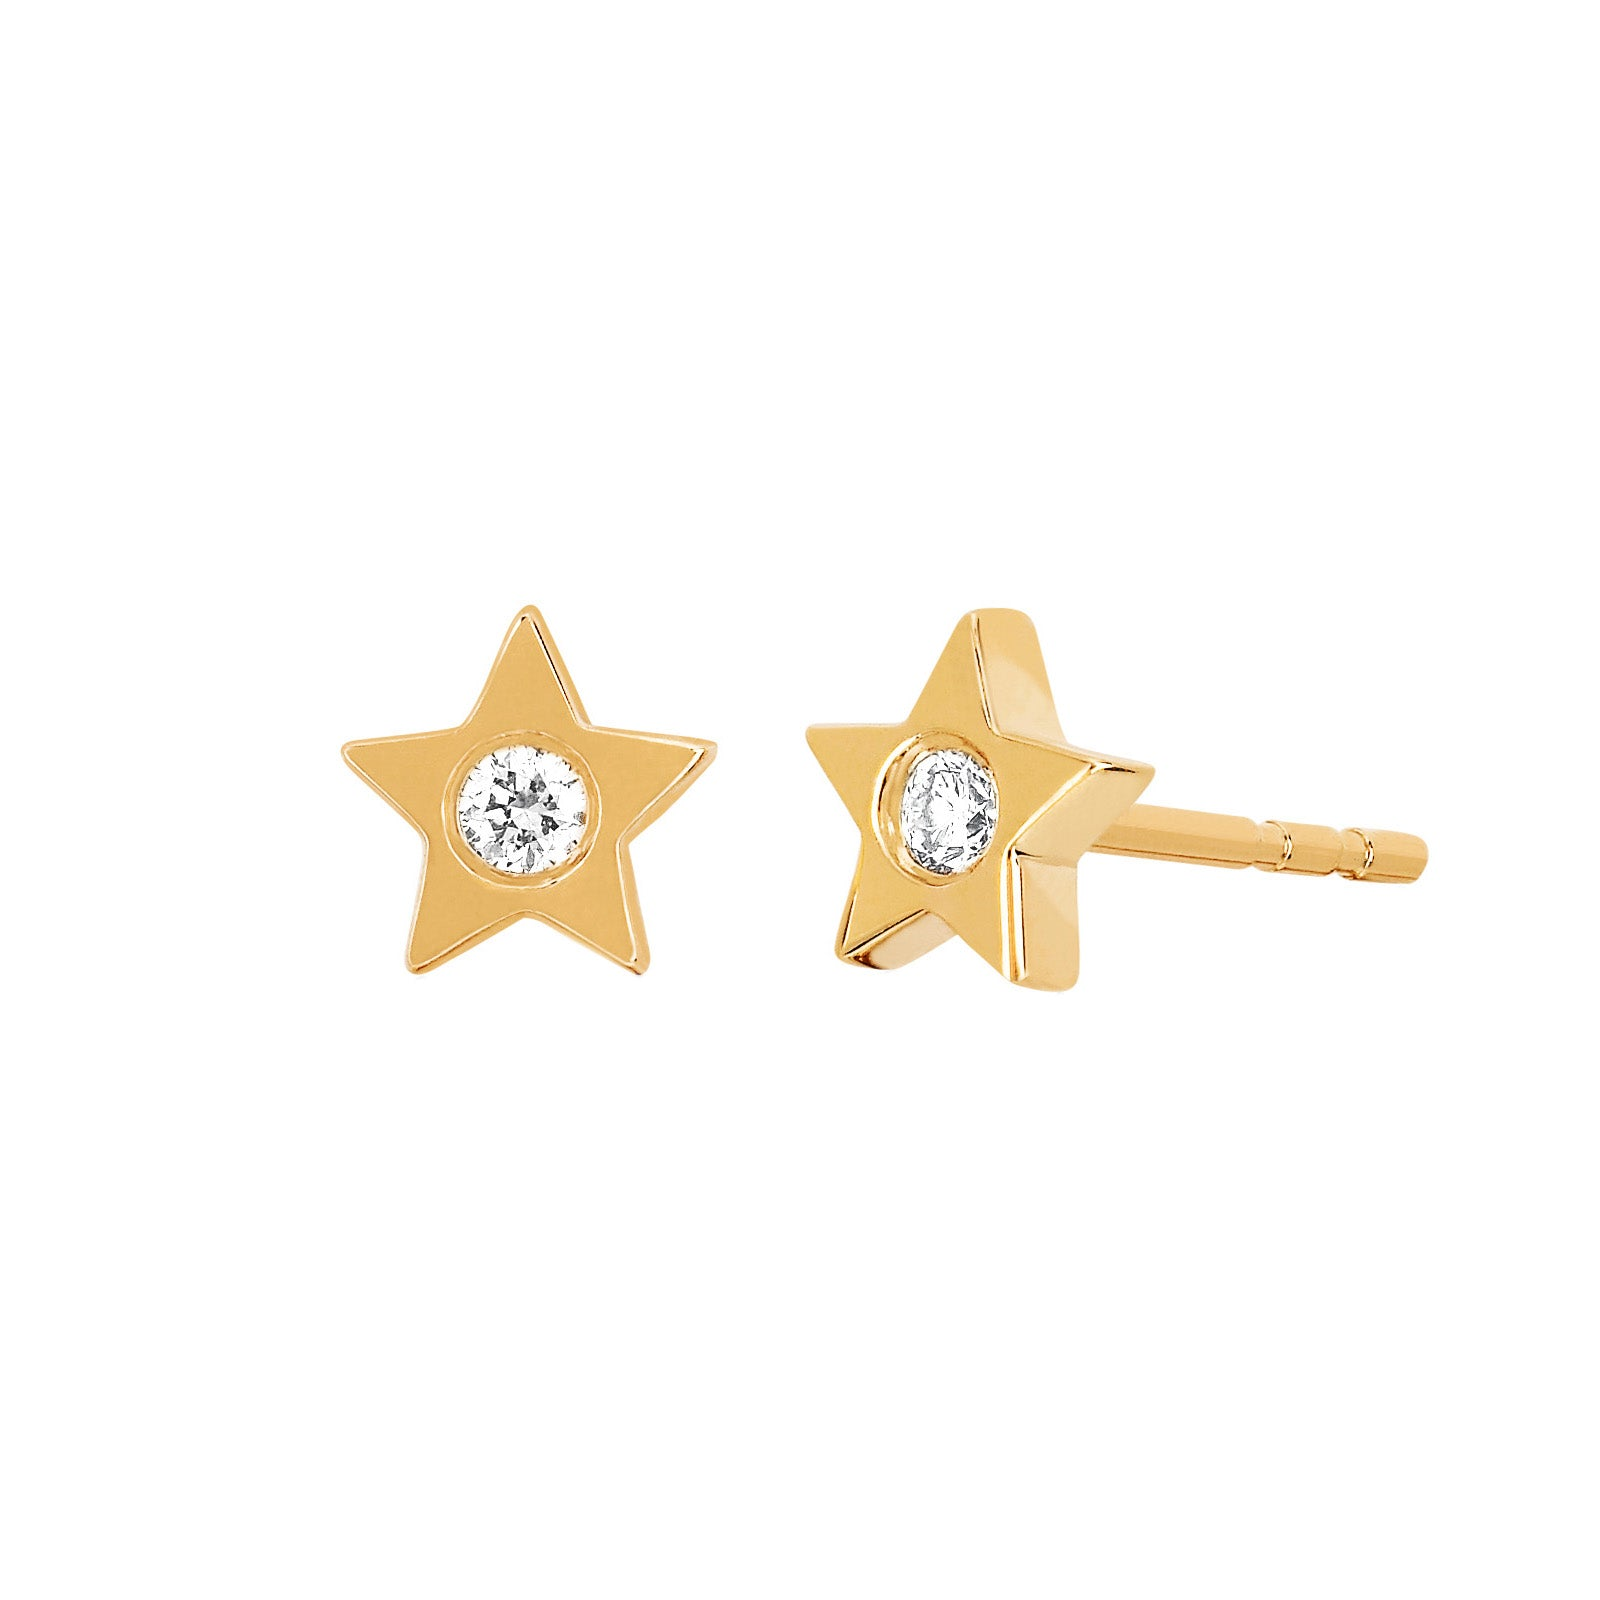 Gold and Diamond Star Studs by EF Collection for Broken English Jewelry